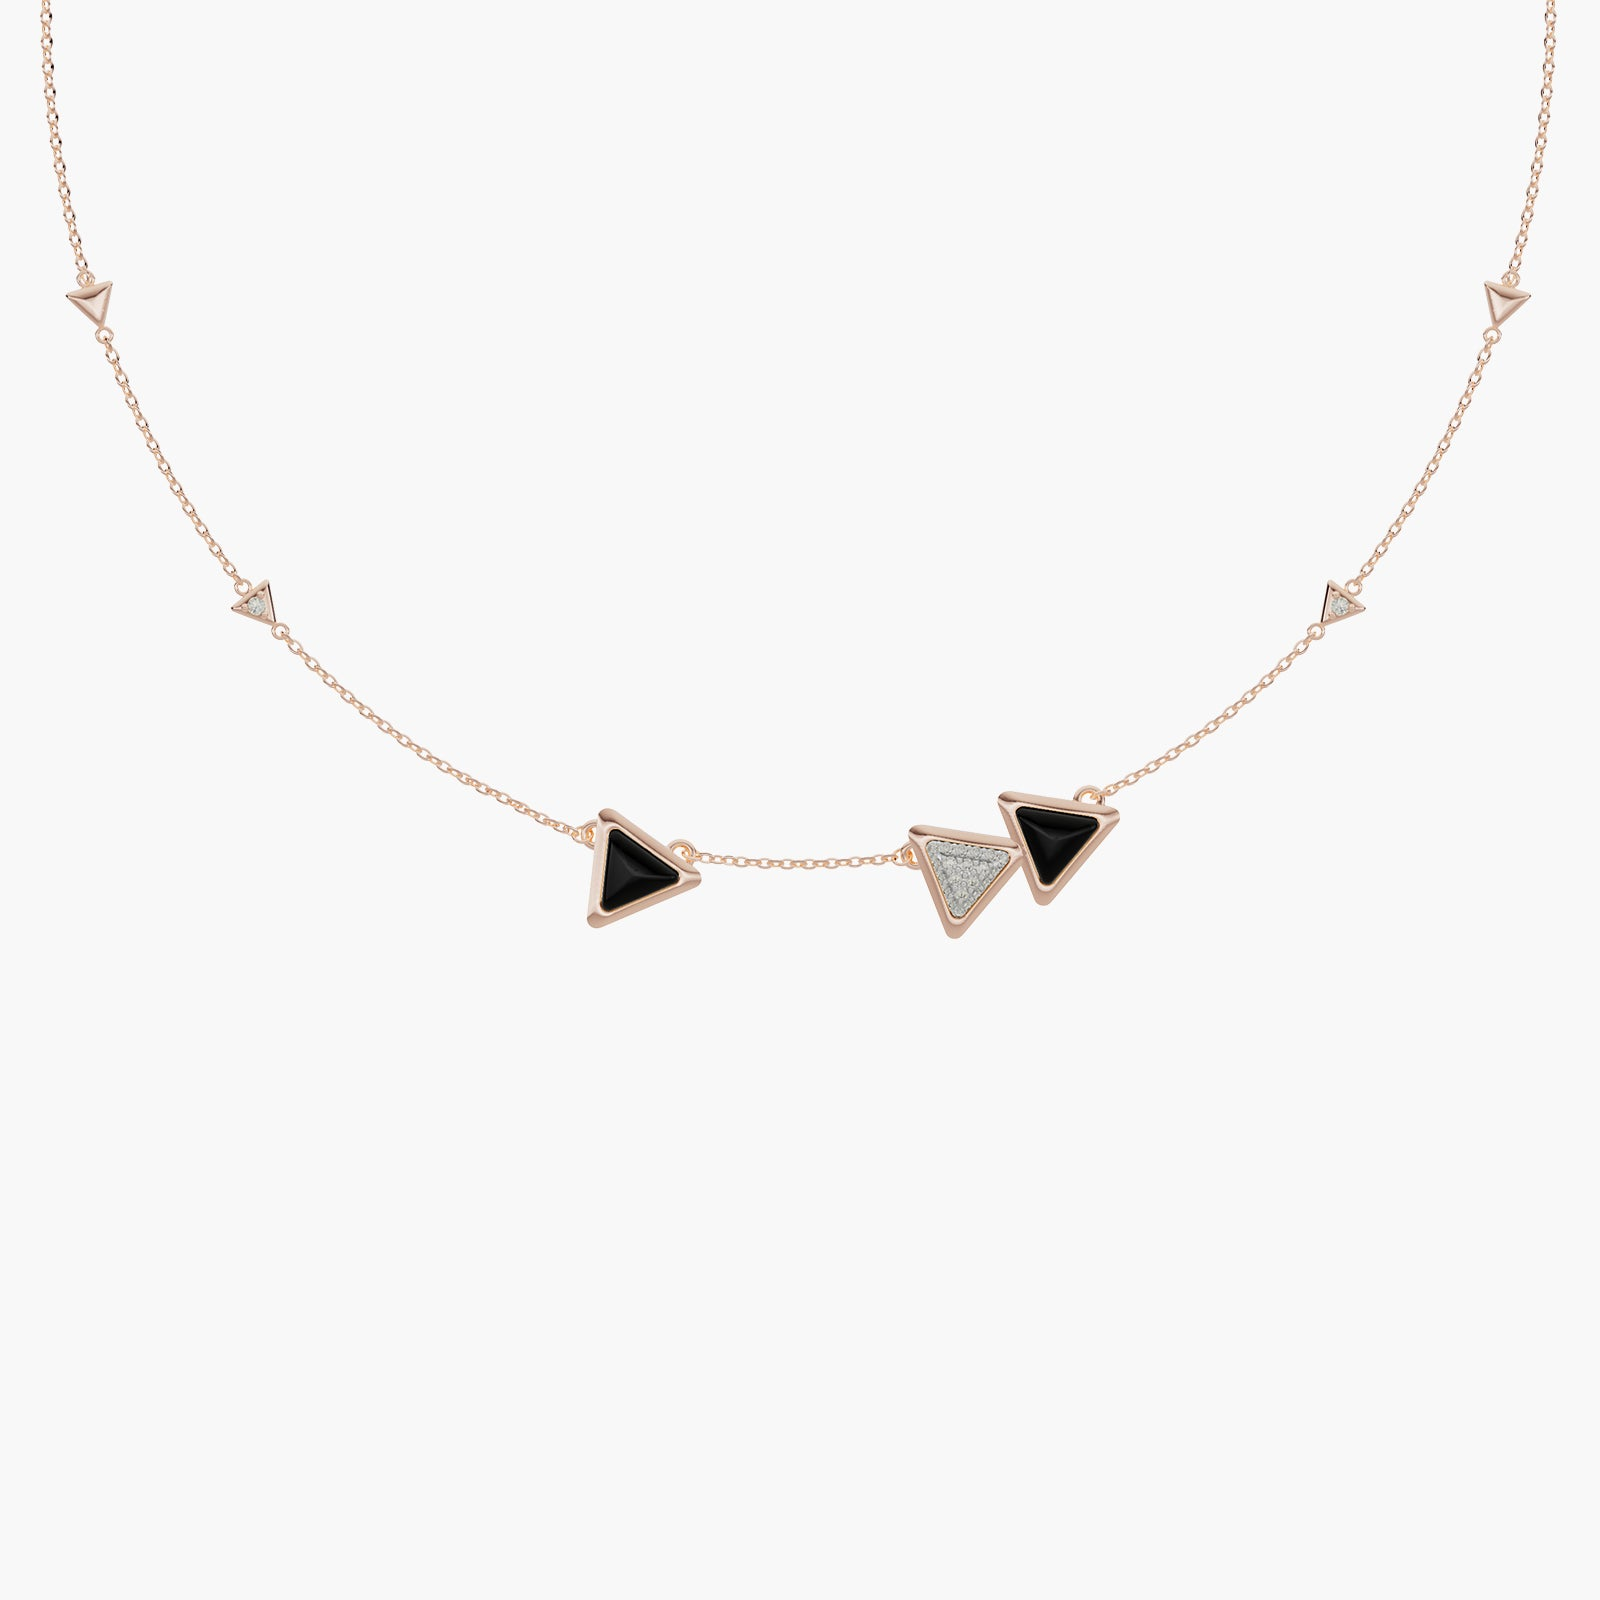 Necklace Dove Vai Forward Exquisite Rose Gold Onix and Diamonds